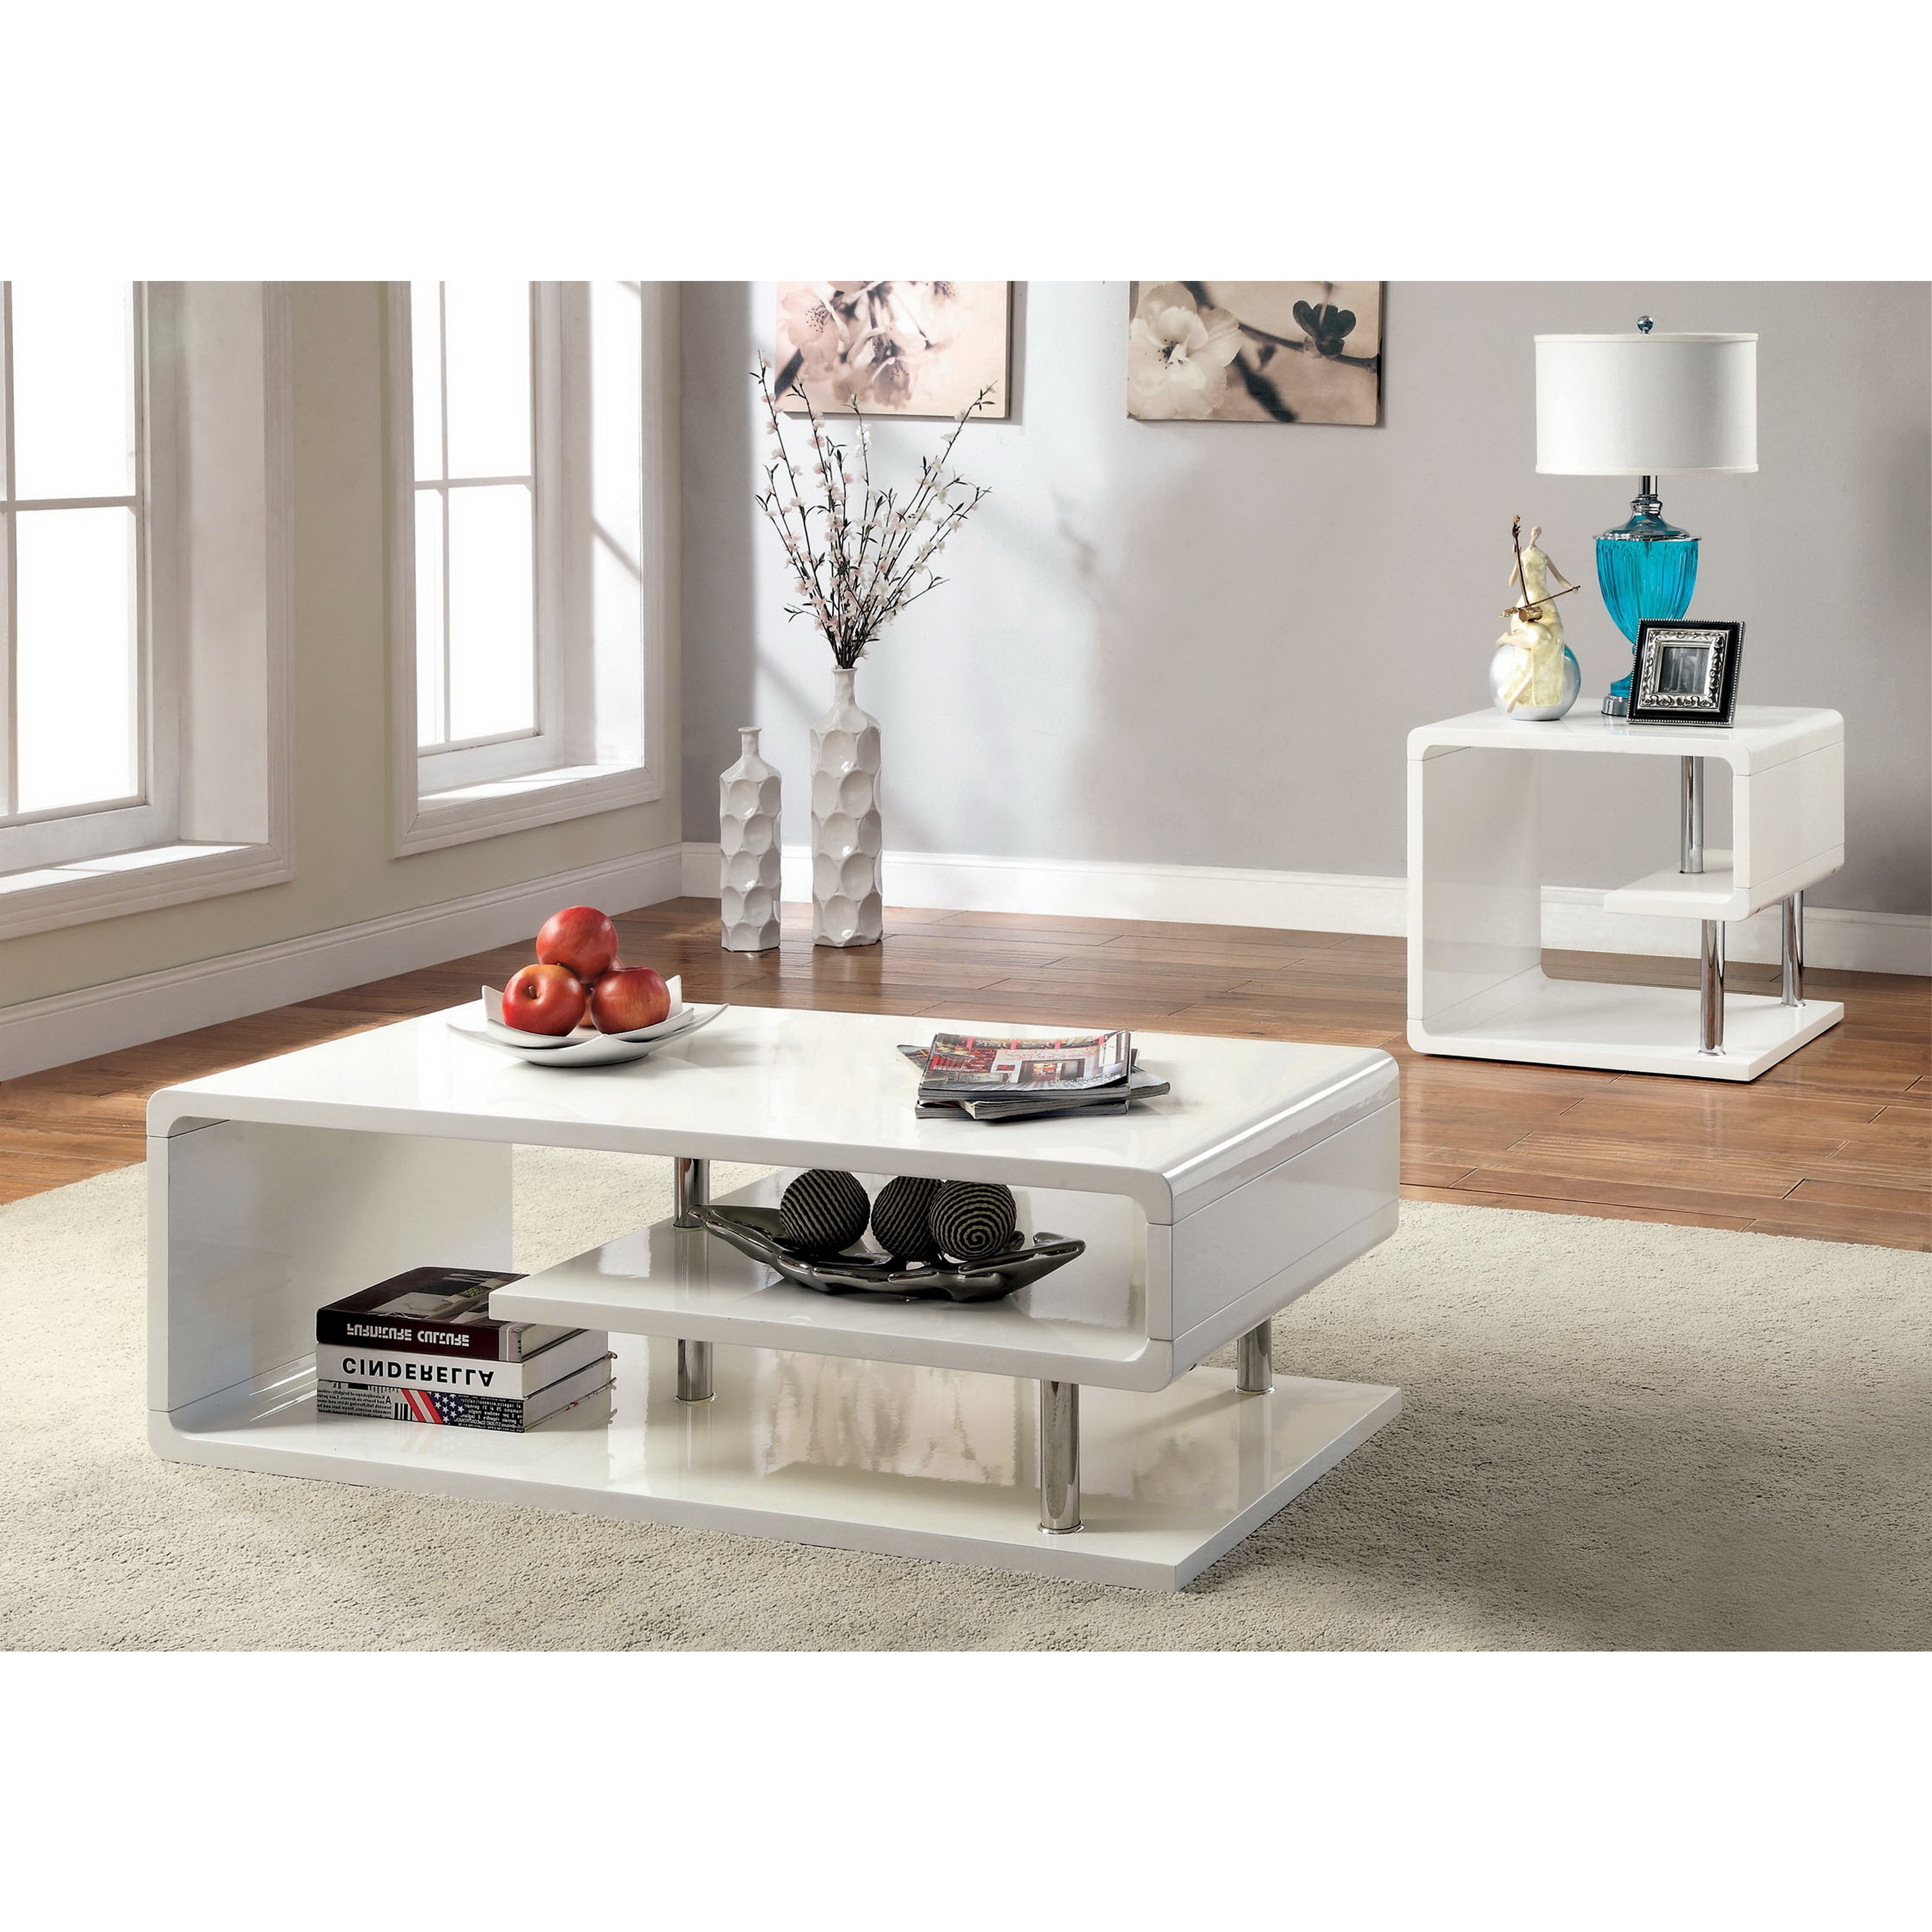 Most Recent Strick & Bolton Sylvia Geometric High Gloss Coffee Tables Pertaining To Strick & Bolton Sylvia Geometric High Gloss End Table (View 3 of 20)